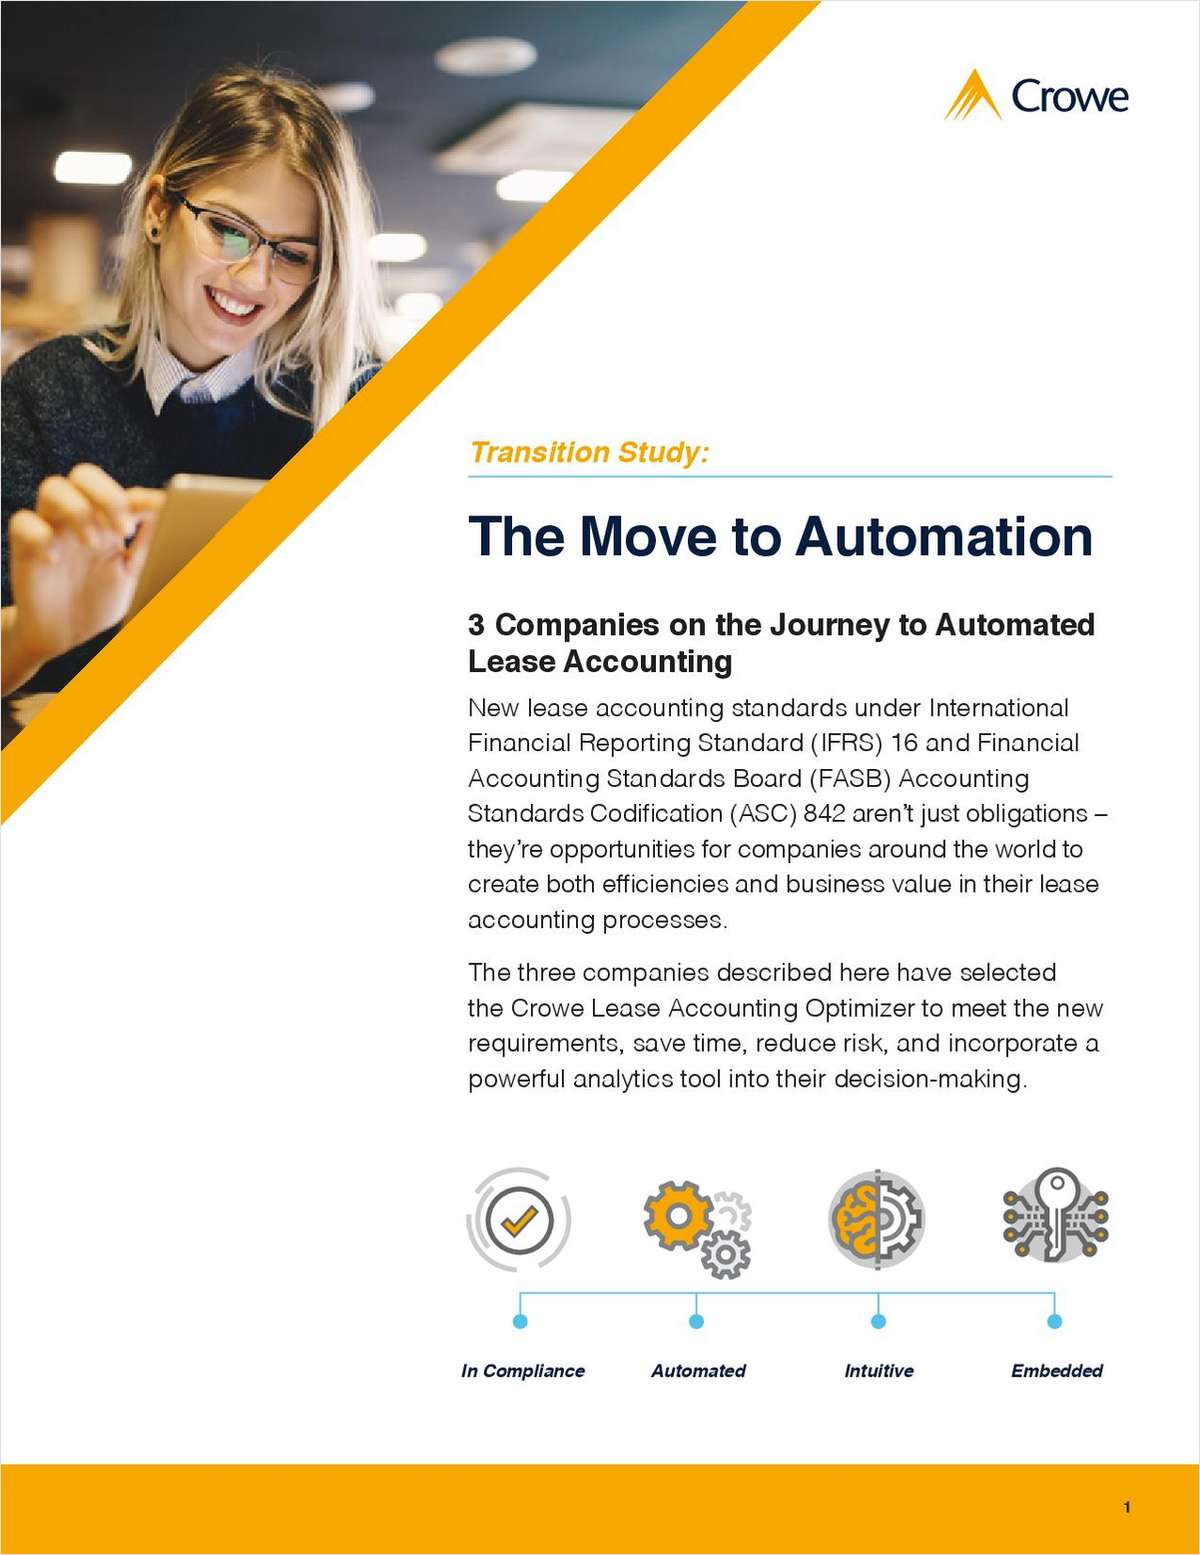 The Move to Automation: 3 Companies on the Journey to Automated Lease Accounting